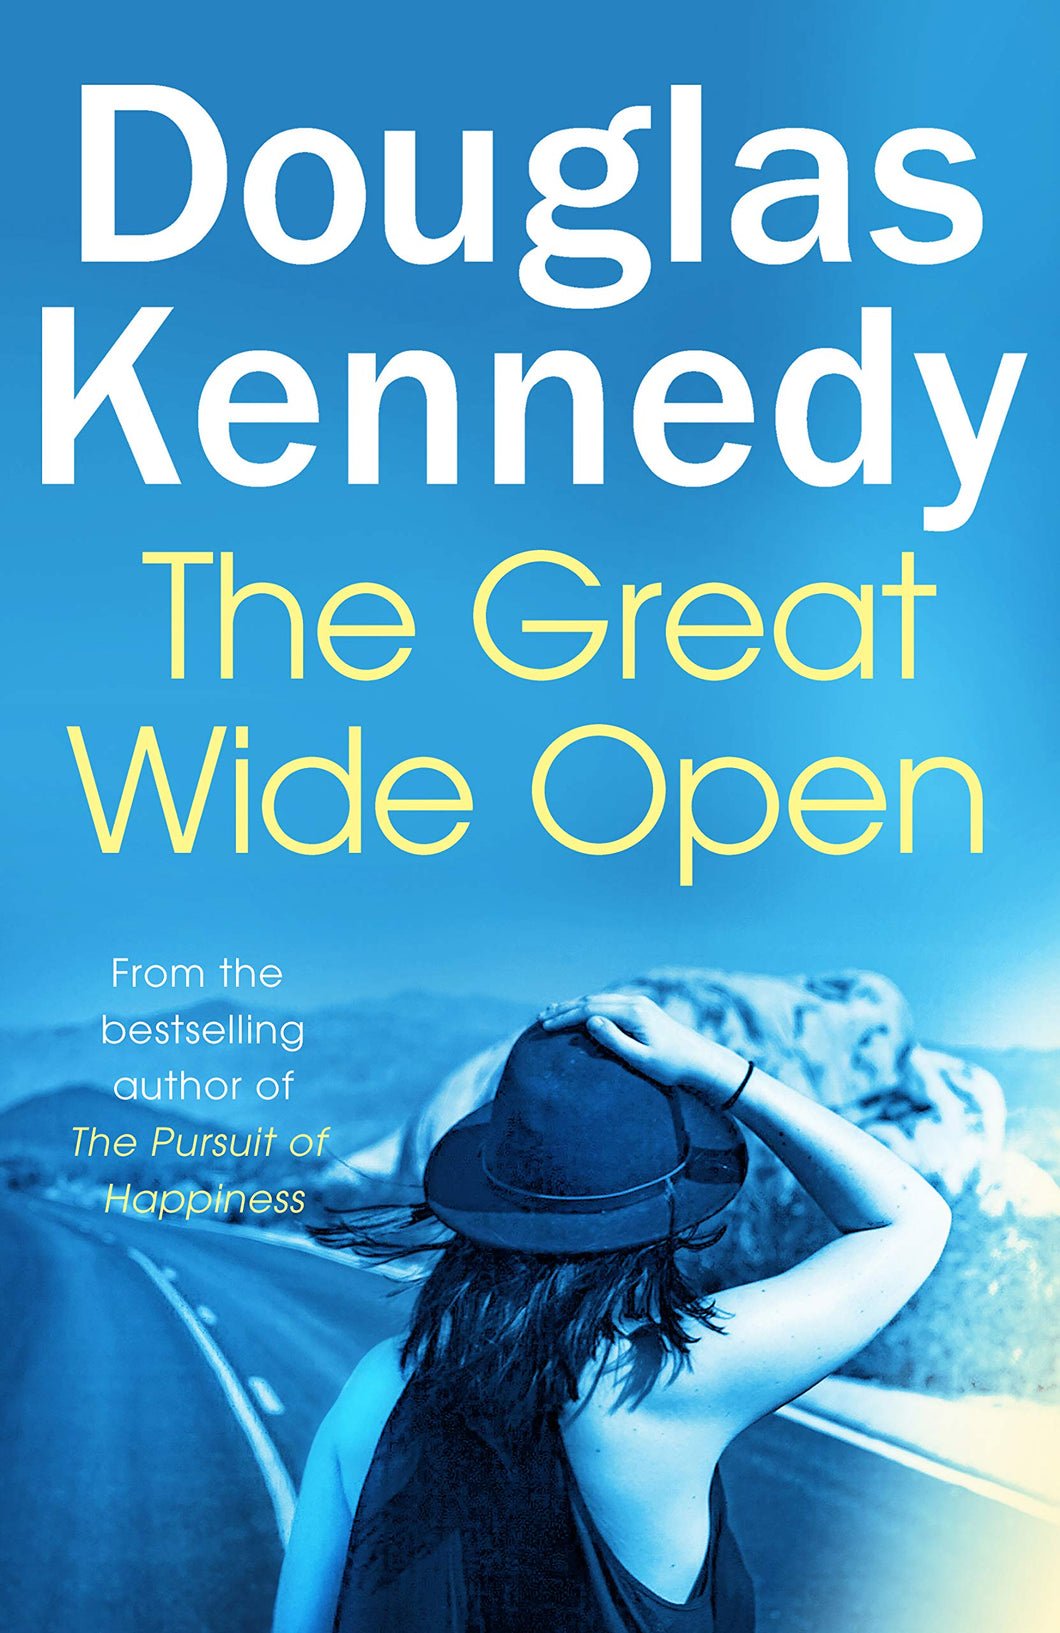 Great wide open, The - Kennedy Douglas